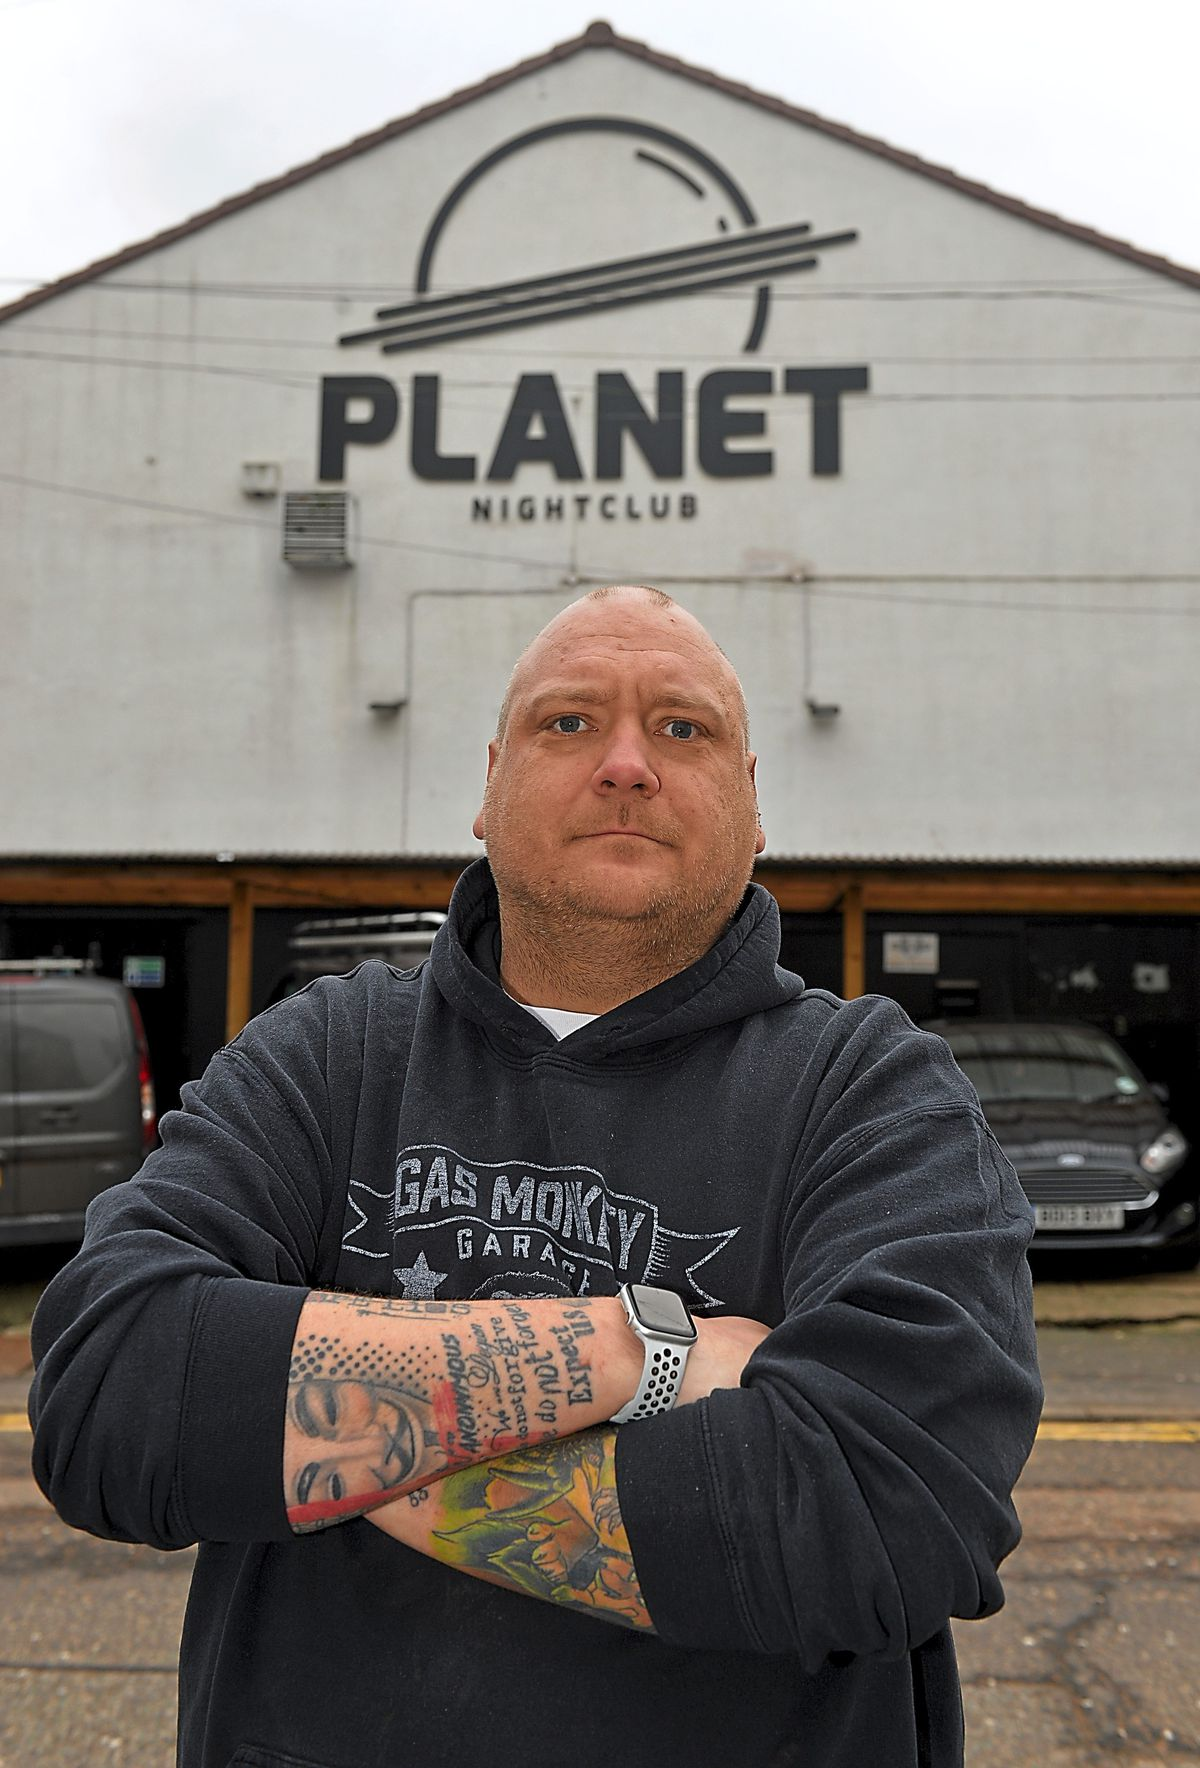 Club owner Michael Ansell outside The Planet Nightclub, Wolverhampton